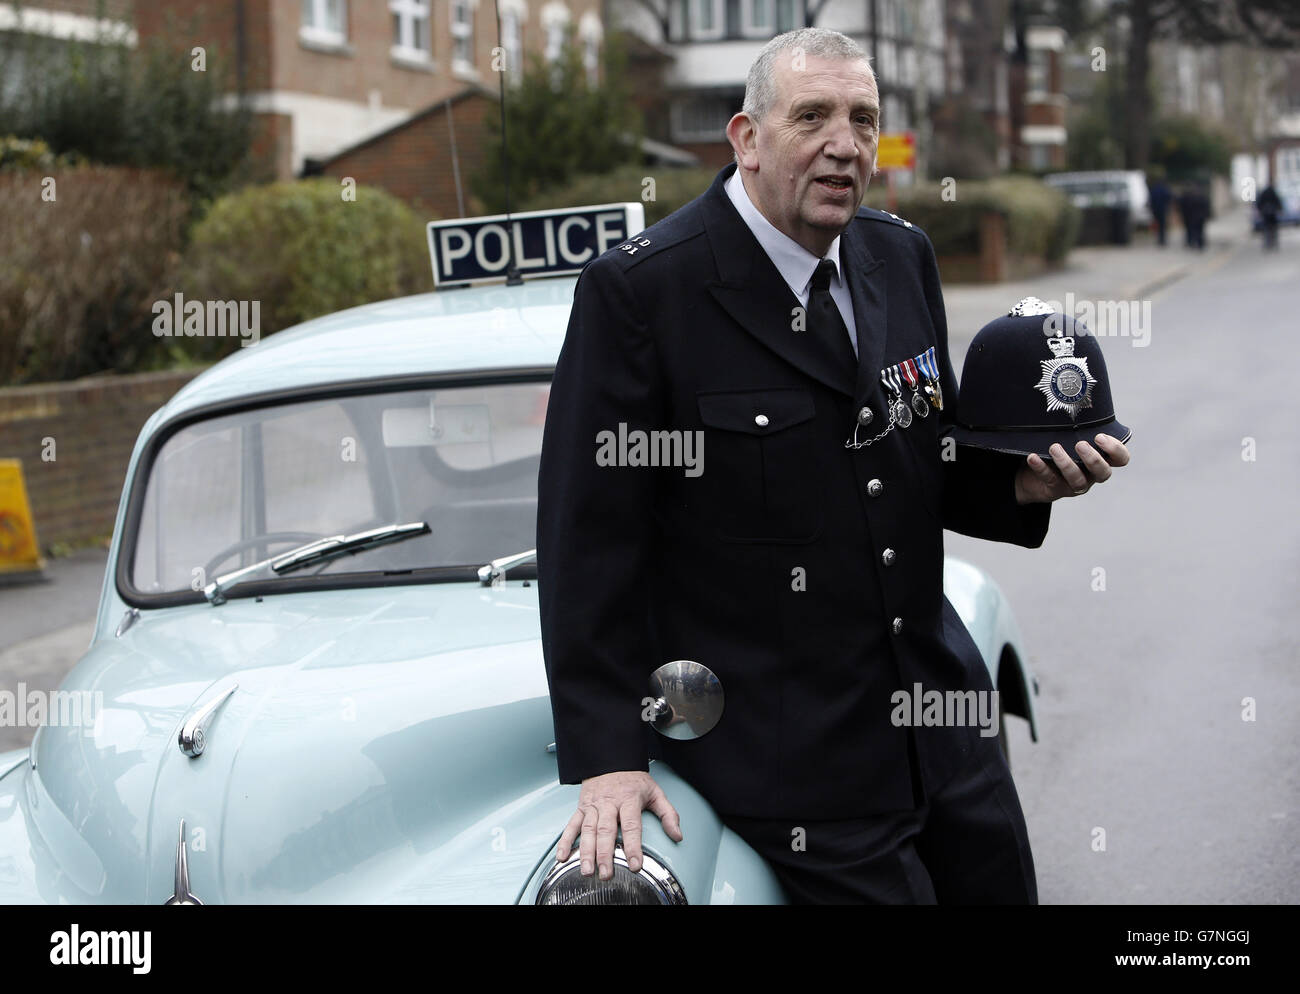 Longest serving officer to retire - Stock Image